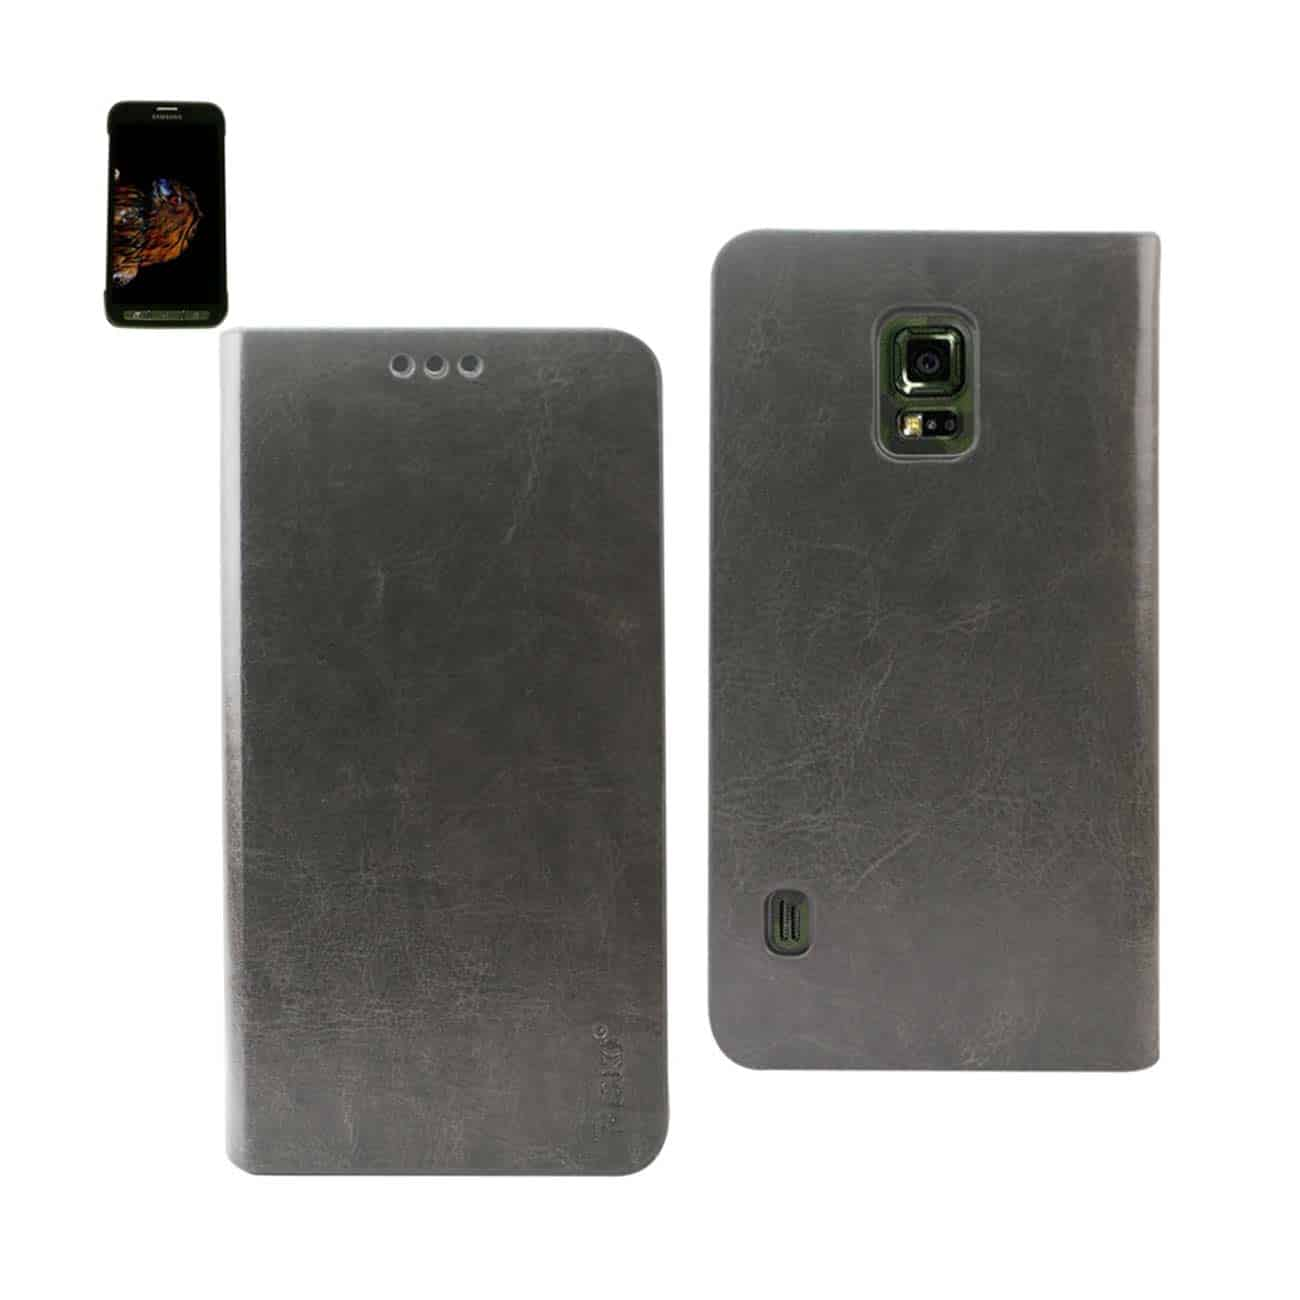 SAMSUNG GALAXY S5 ACTIVE FLIP FOLIO CASE WITH CARD HOLDER IN GRAY